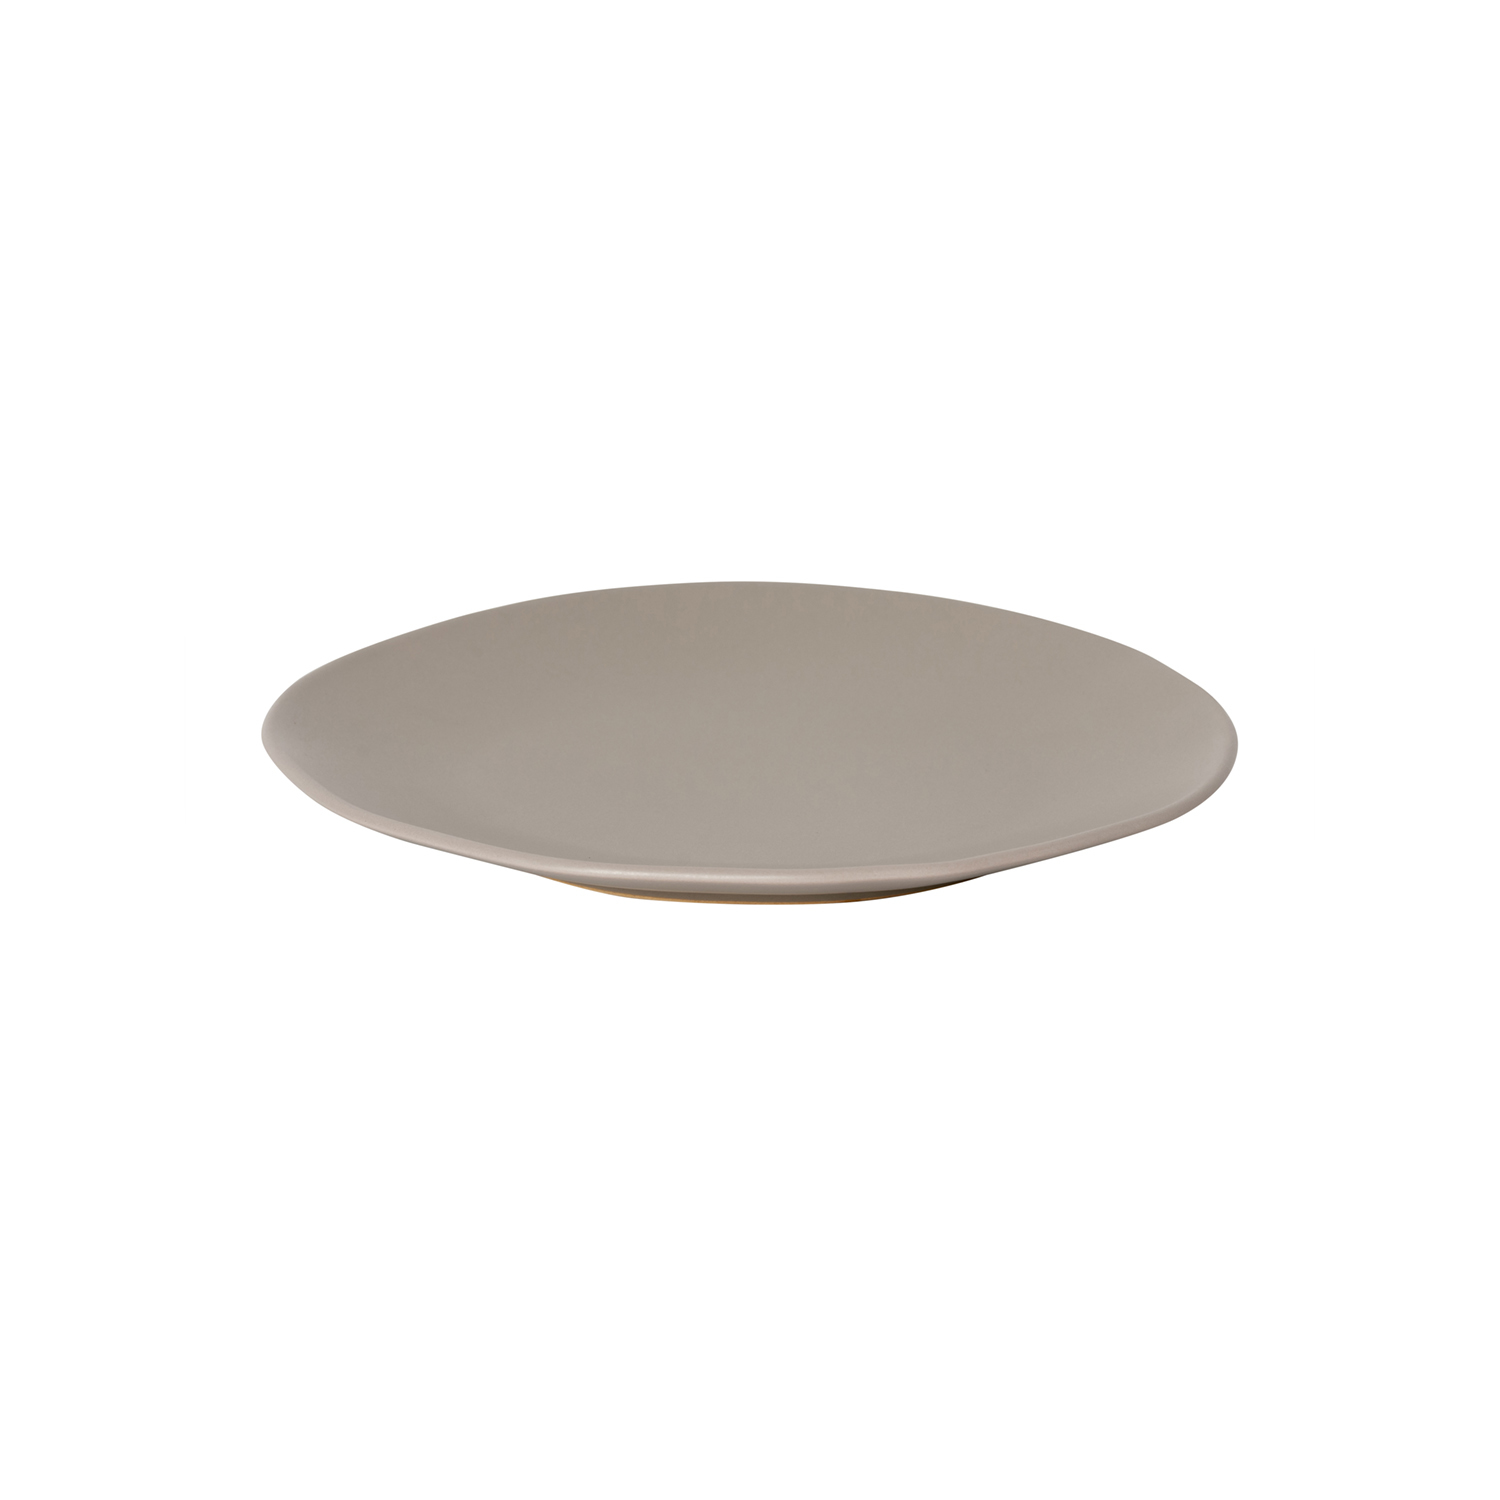 General Eclectic: Freya Side Plate - Stone image